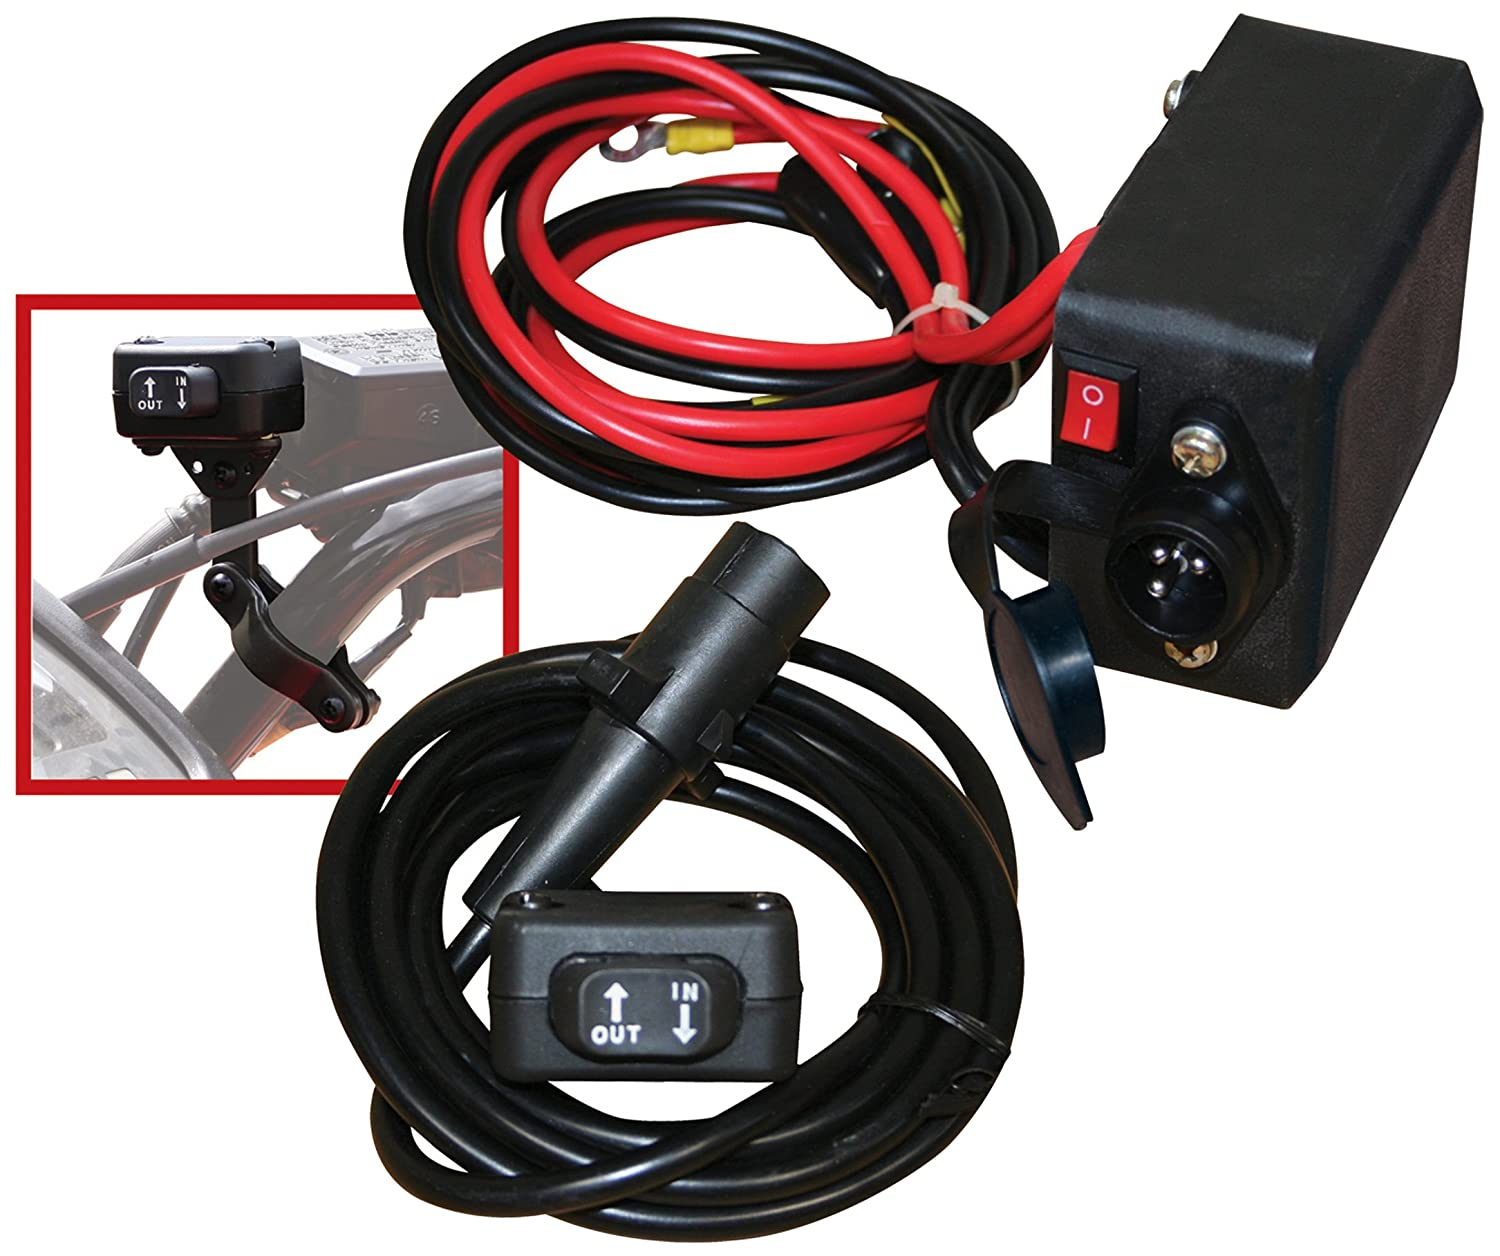 Amazon.com: Champion Mini-Rocker Switch Winch Remote Control Kit for  5000-lb. or Less ATV/UTV Winches: Automotive